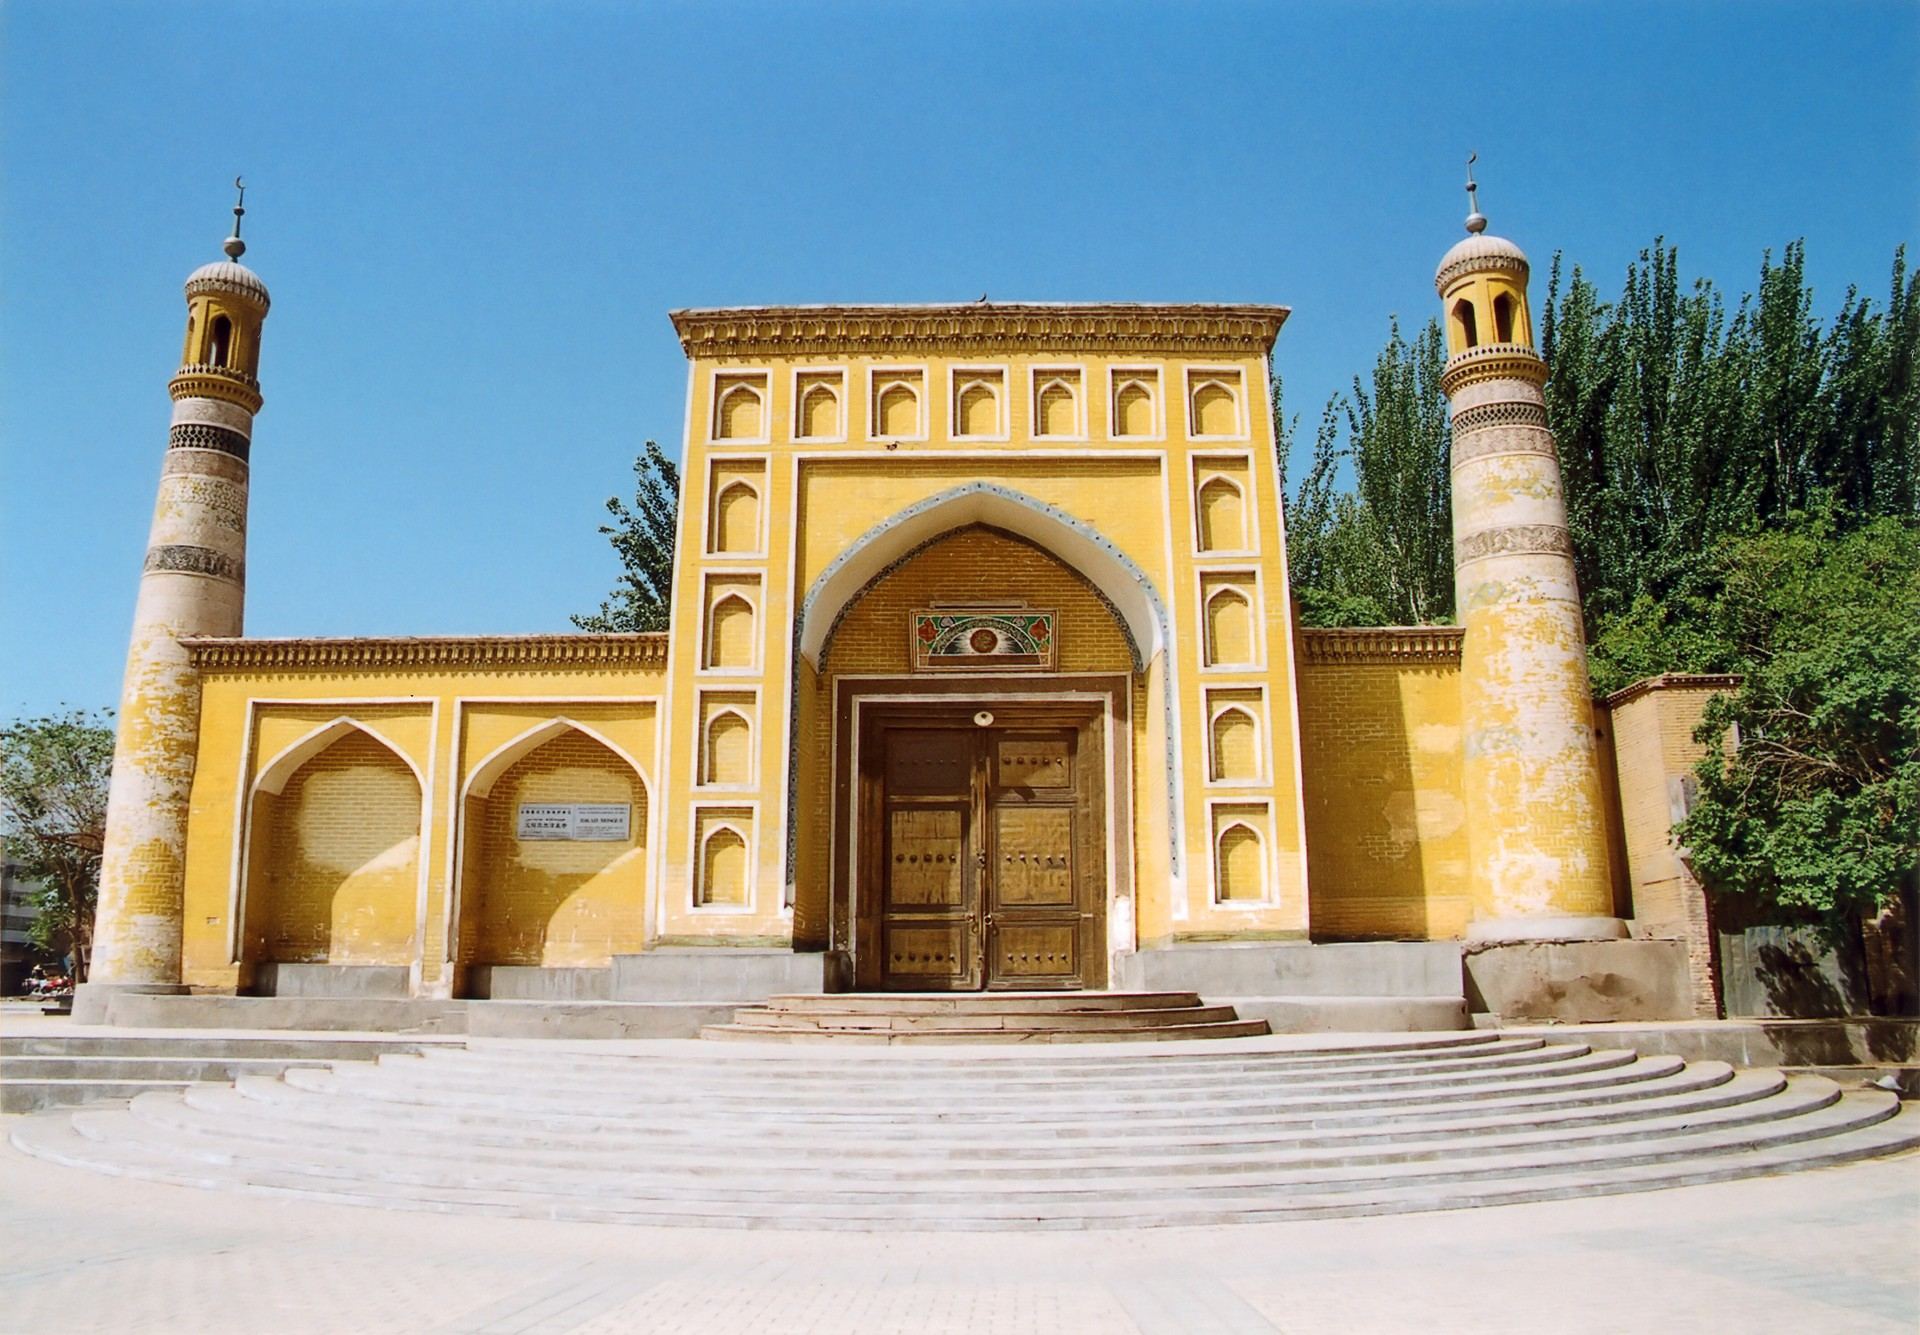 Id Kah Mosque in Kashgar, China